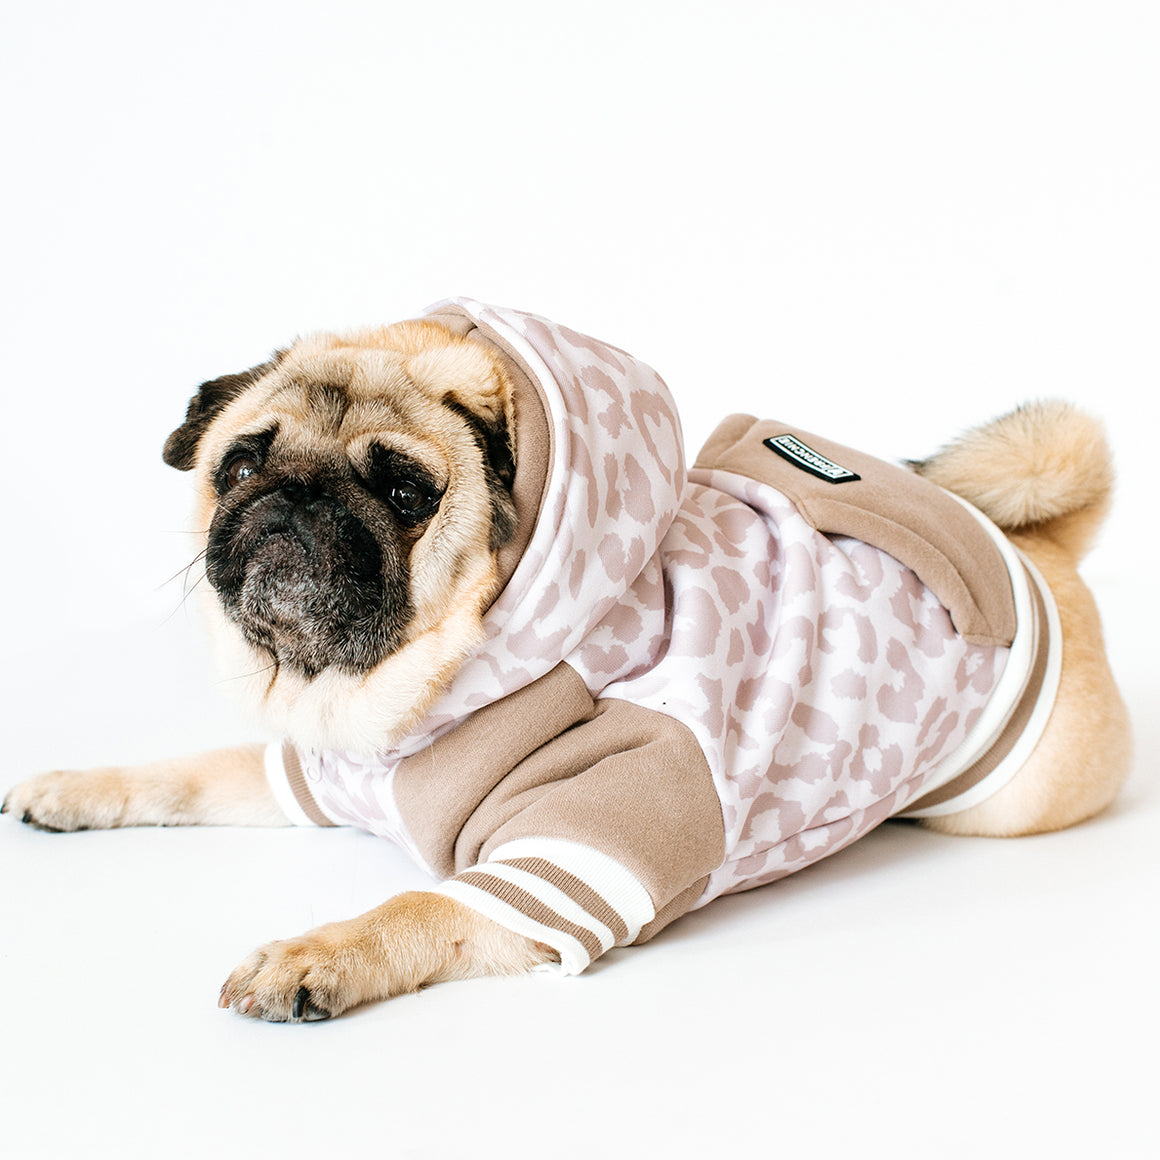 Frenchie Dog Hoodie - The Leo- Beige